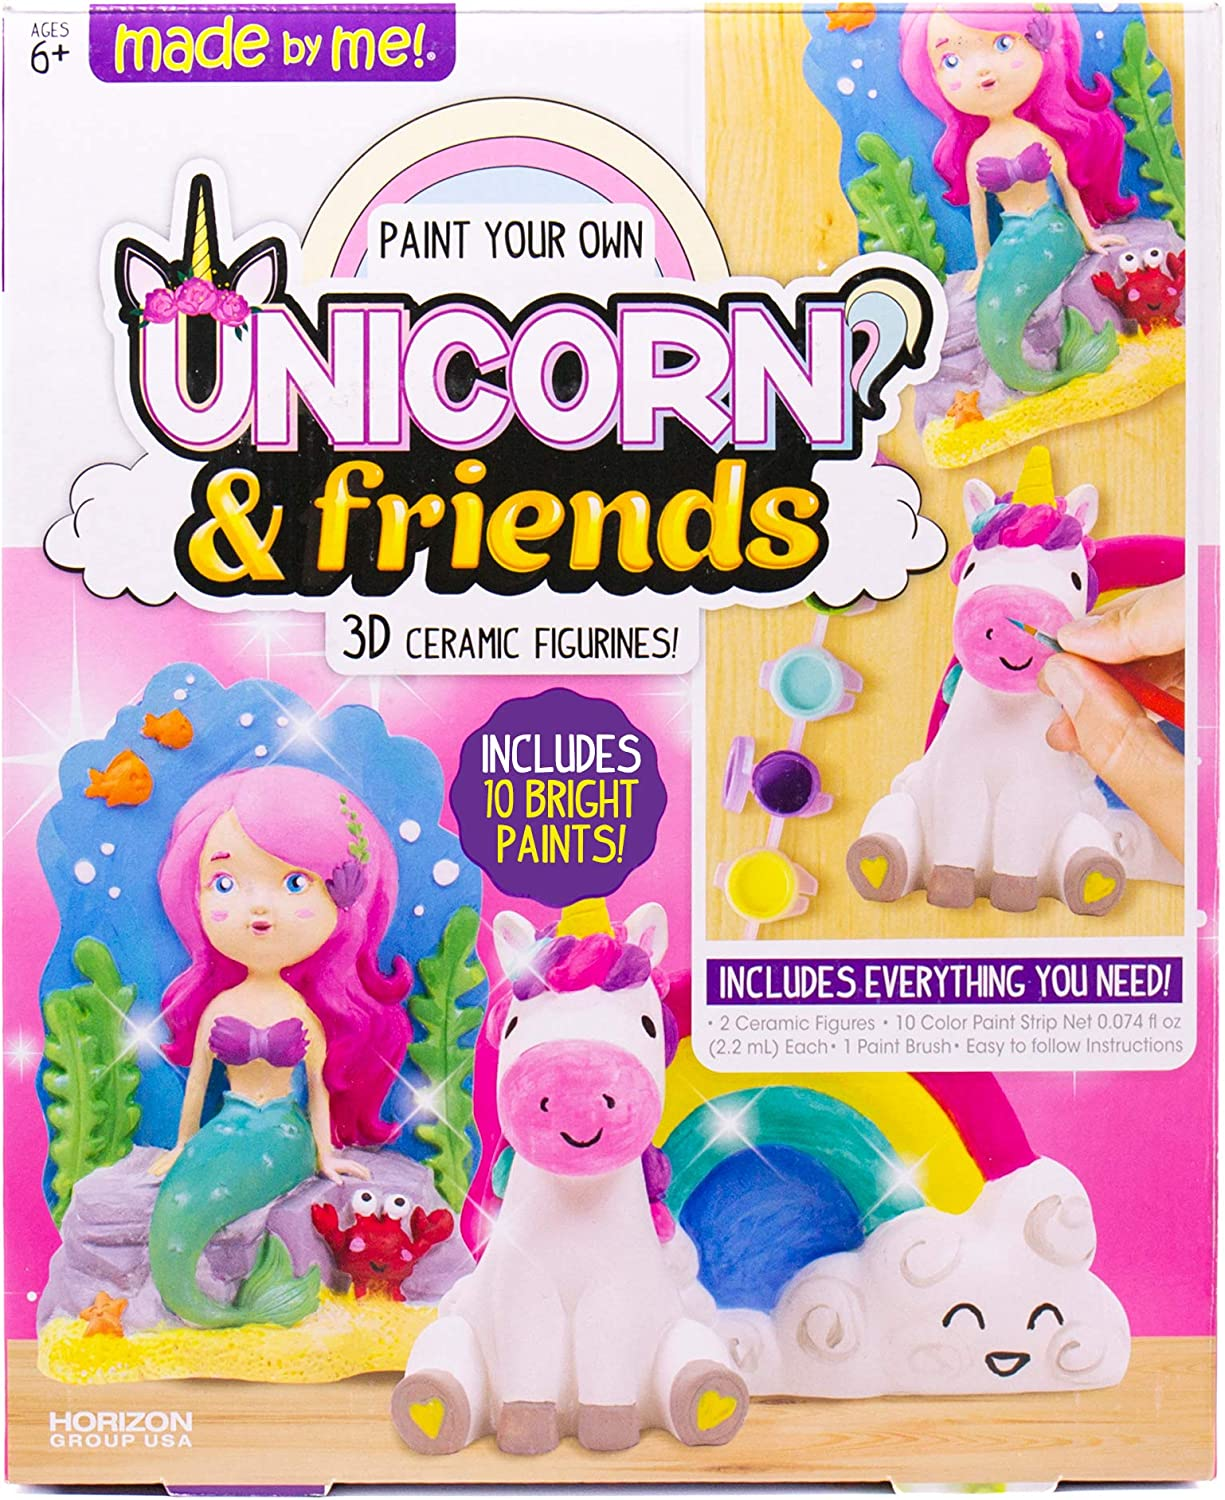 Made By Me Paint Your Own Unicorn Pals, Includes an Easy To Paint Unicorn, Rainbow & More by Horizon Group USA, Multicolored